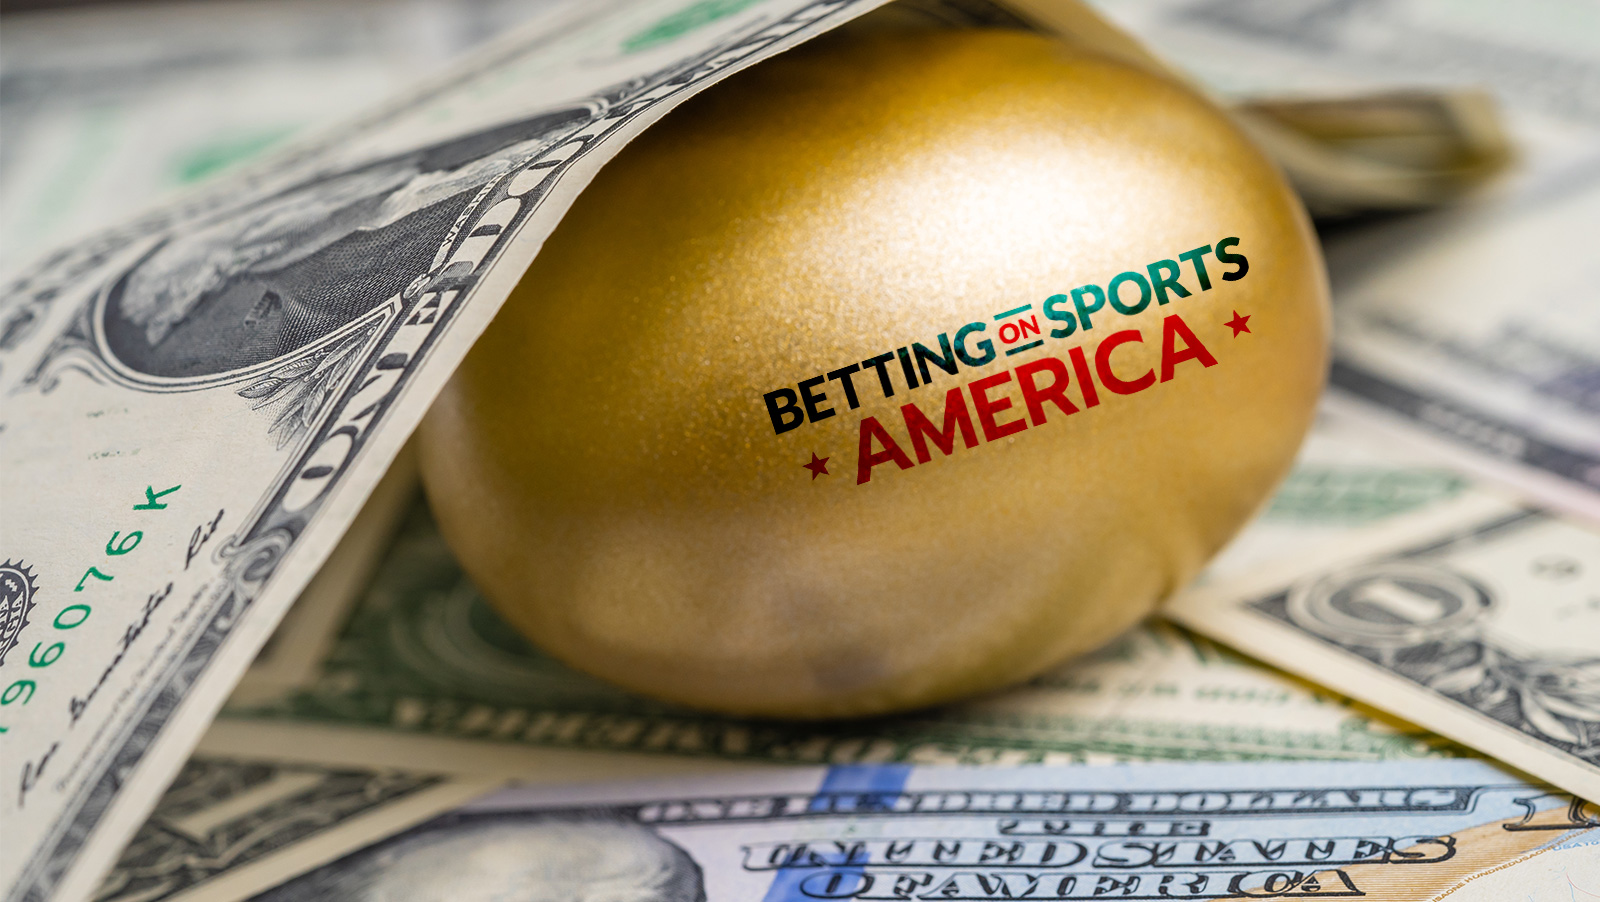 Becky's Affiliated: Newly regulated American iGaming market, yet some things never change